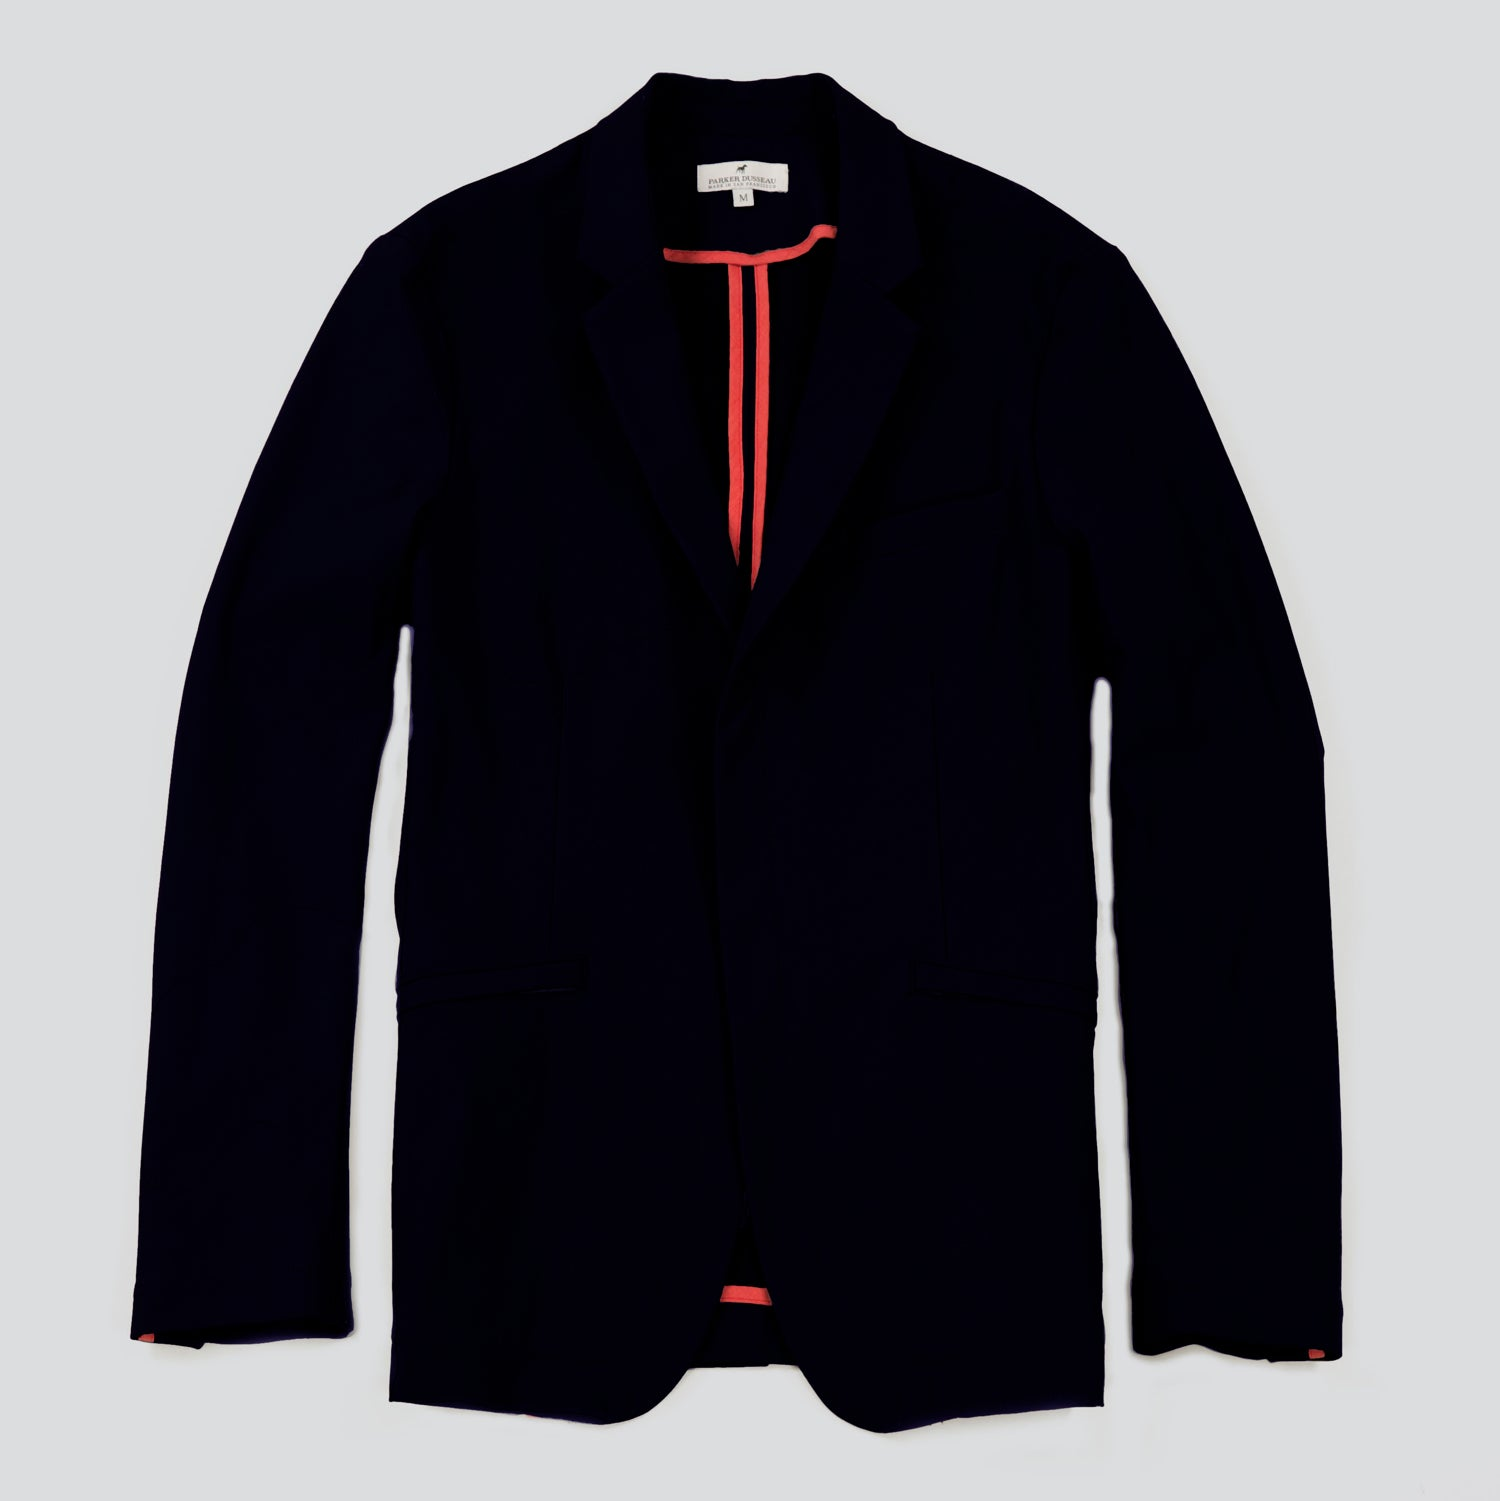 Utility Travel Blazer - Navy Blazer- Parker Dusseau : Functional Menswear Essentials for the Always Ready Lifestyle. Based in San Francisco, California